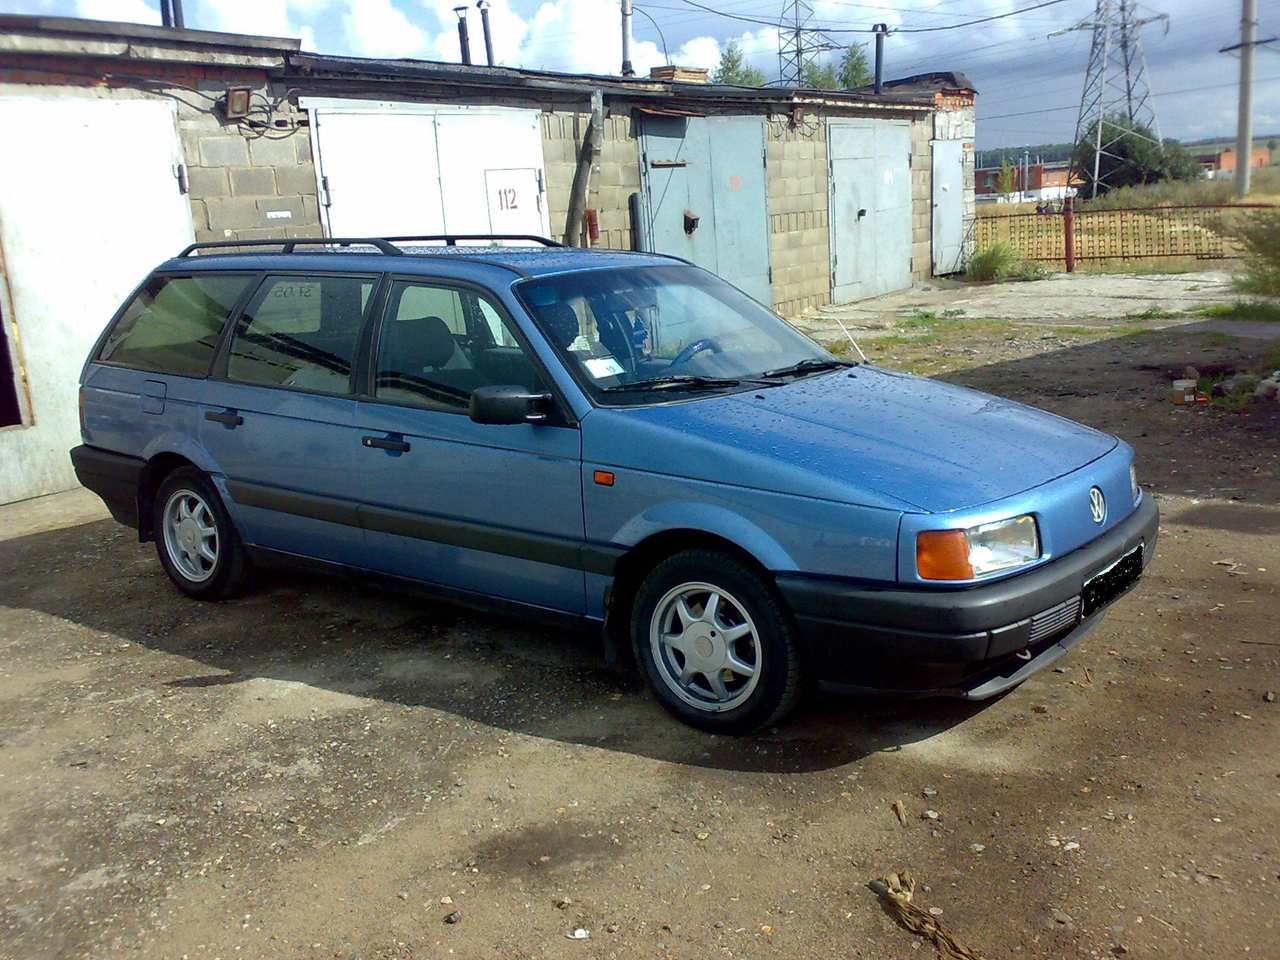 used 1992 volkswagen passat photos 1800cc gasoline ff manual for sale. Black Bedroom Furniture Sets. Home Design Ideas